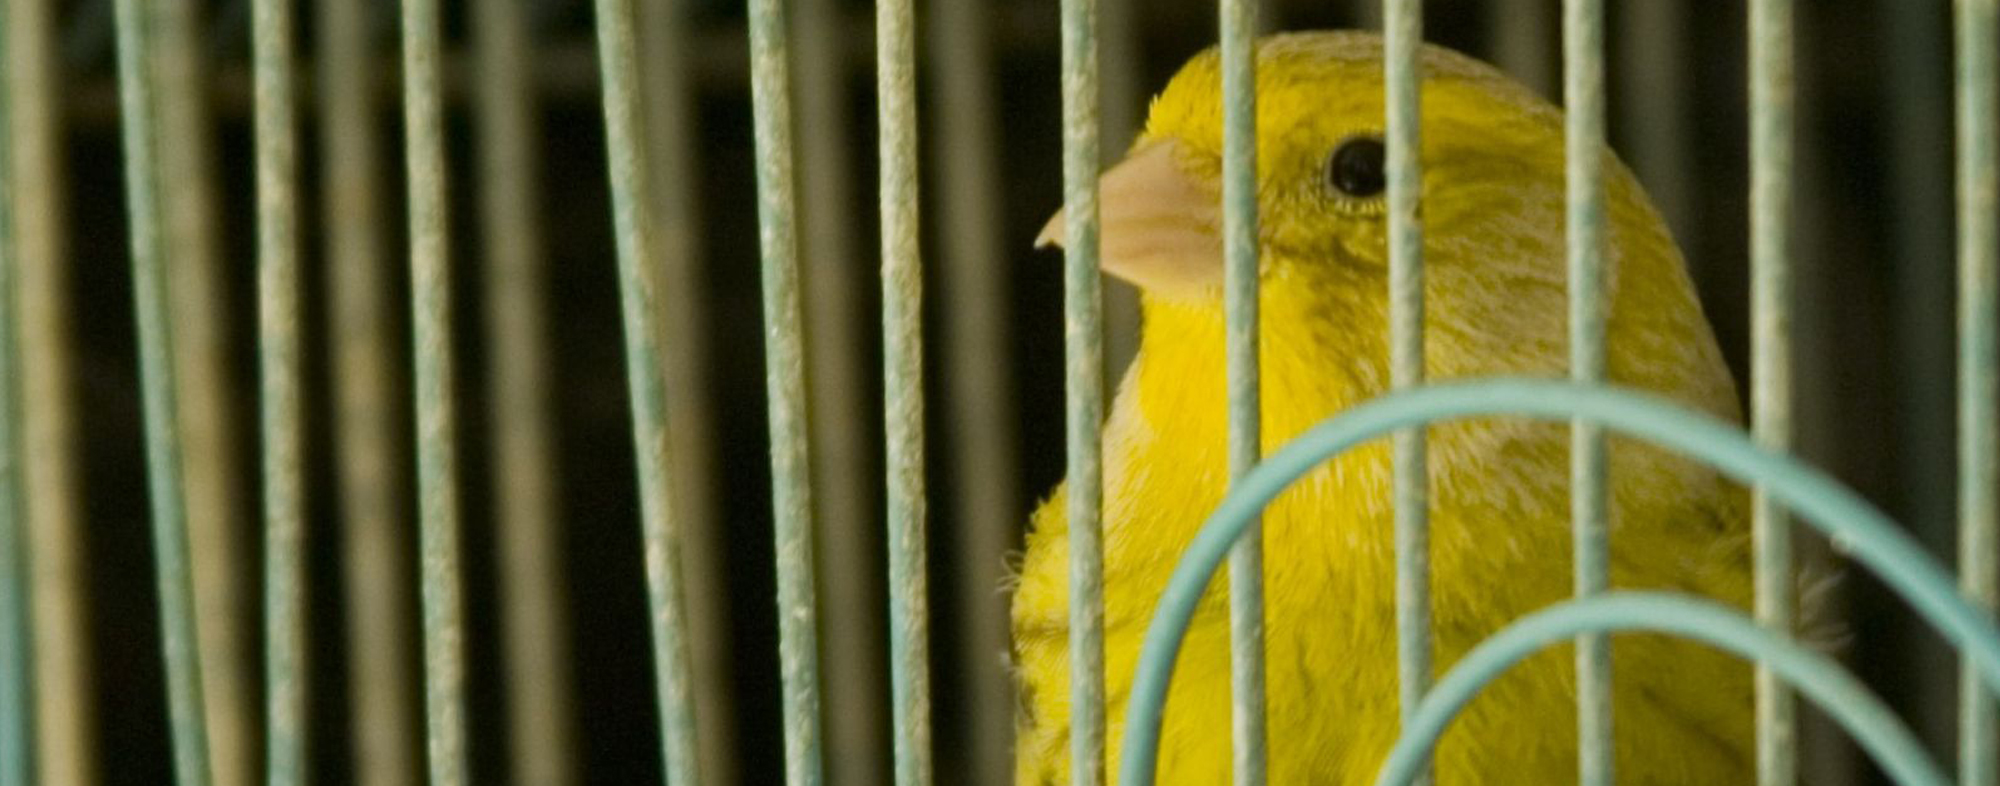 How to choose a bird cage article image - large